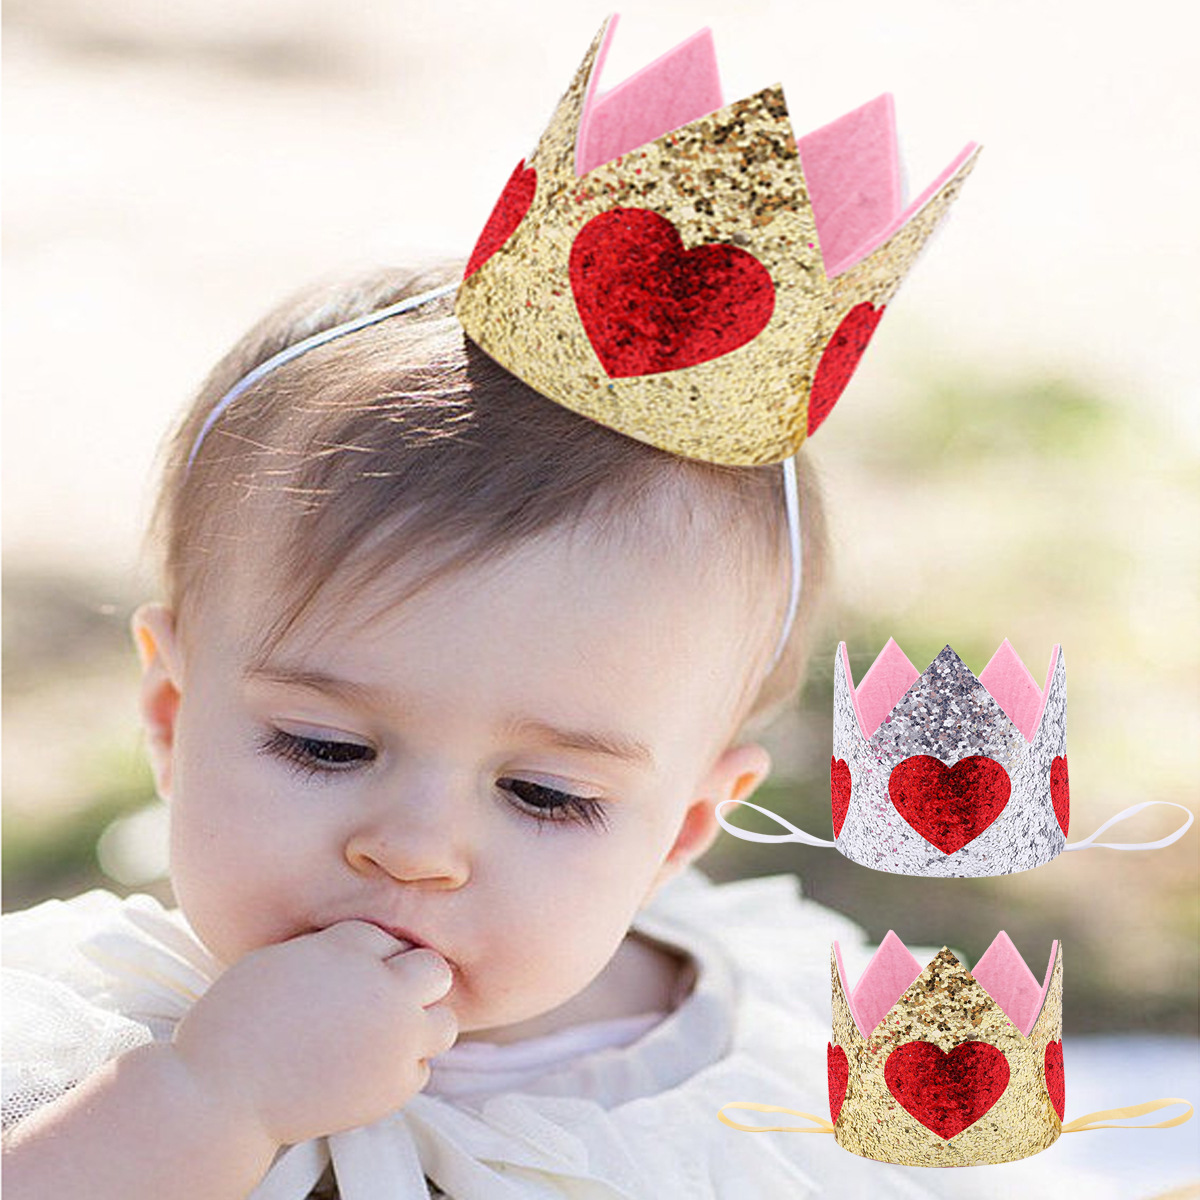 Hair accessories manufacturers - Manufacturers New Baby Fashion Crown Three Dimensional Love Headband Birthday Party Photo Prop Hair Accessories